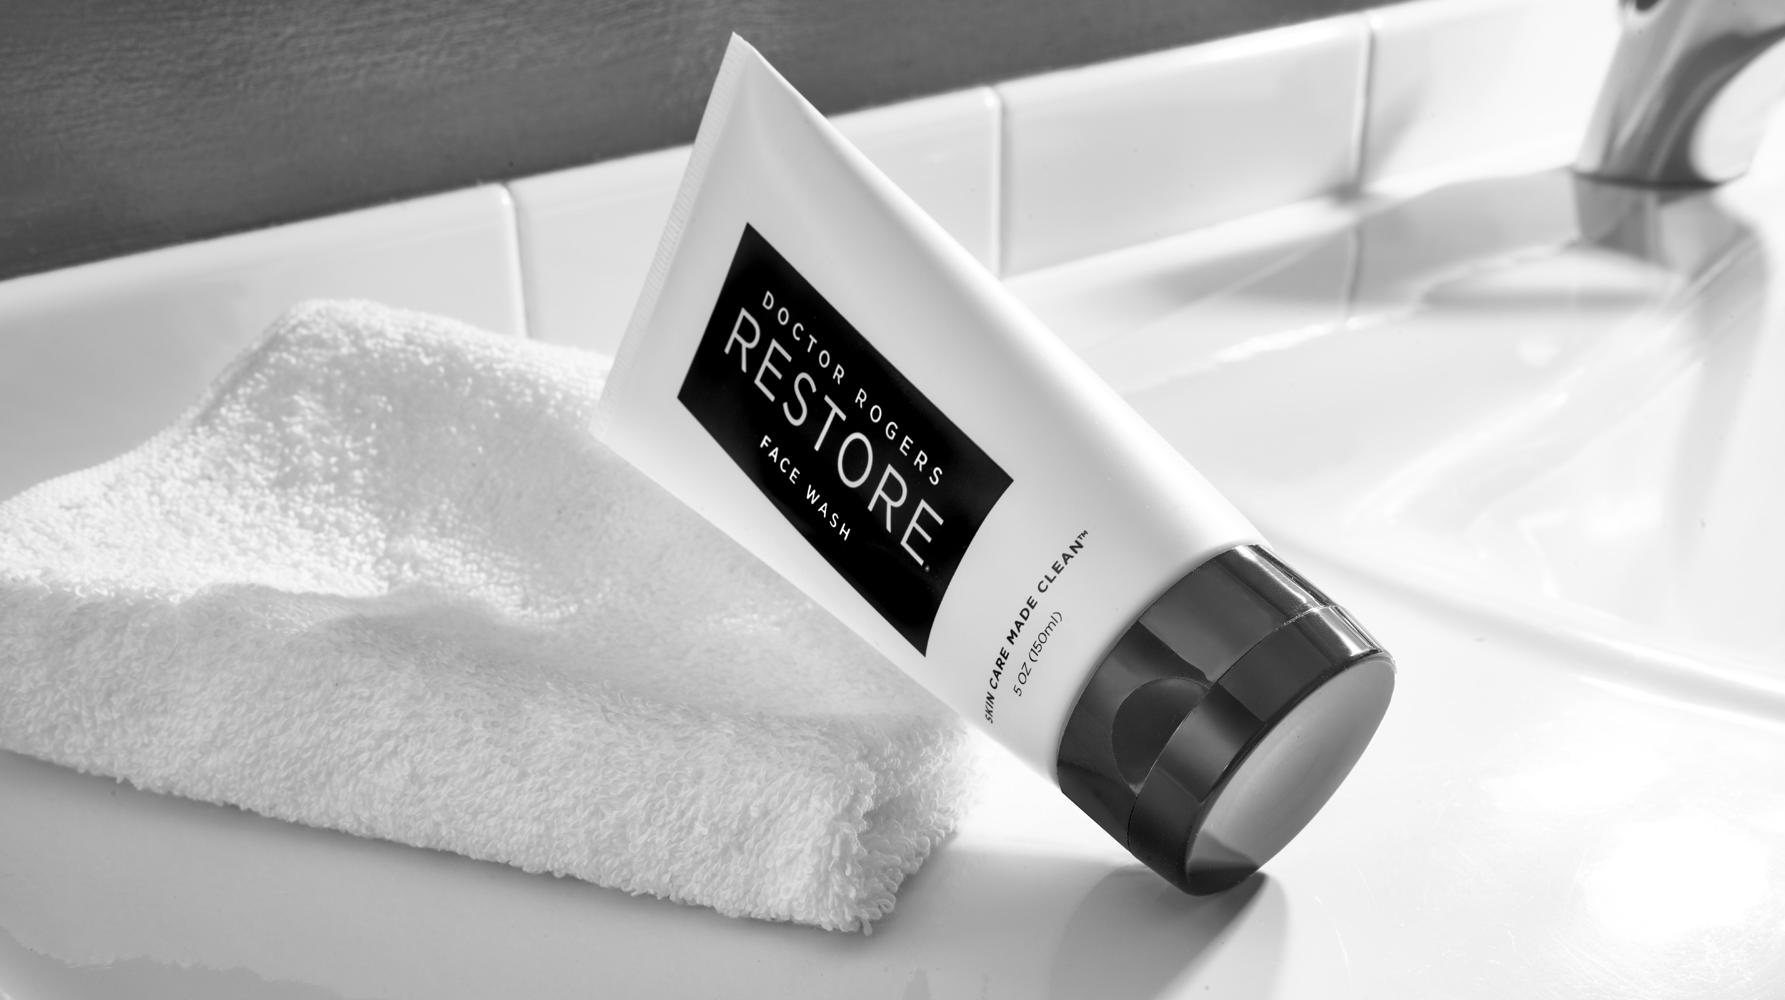 Doctor Rogers Restore Goes From One SKU To Two With The Launch Of Face Wash At Violet Grey